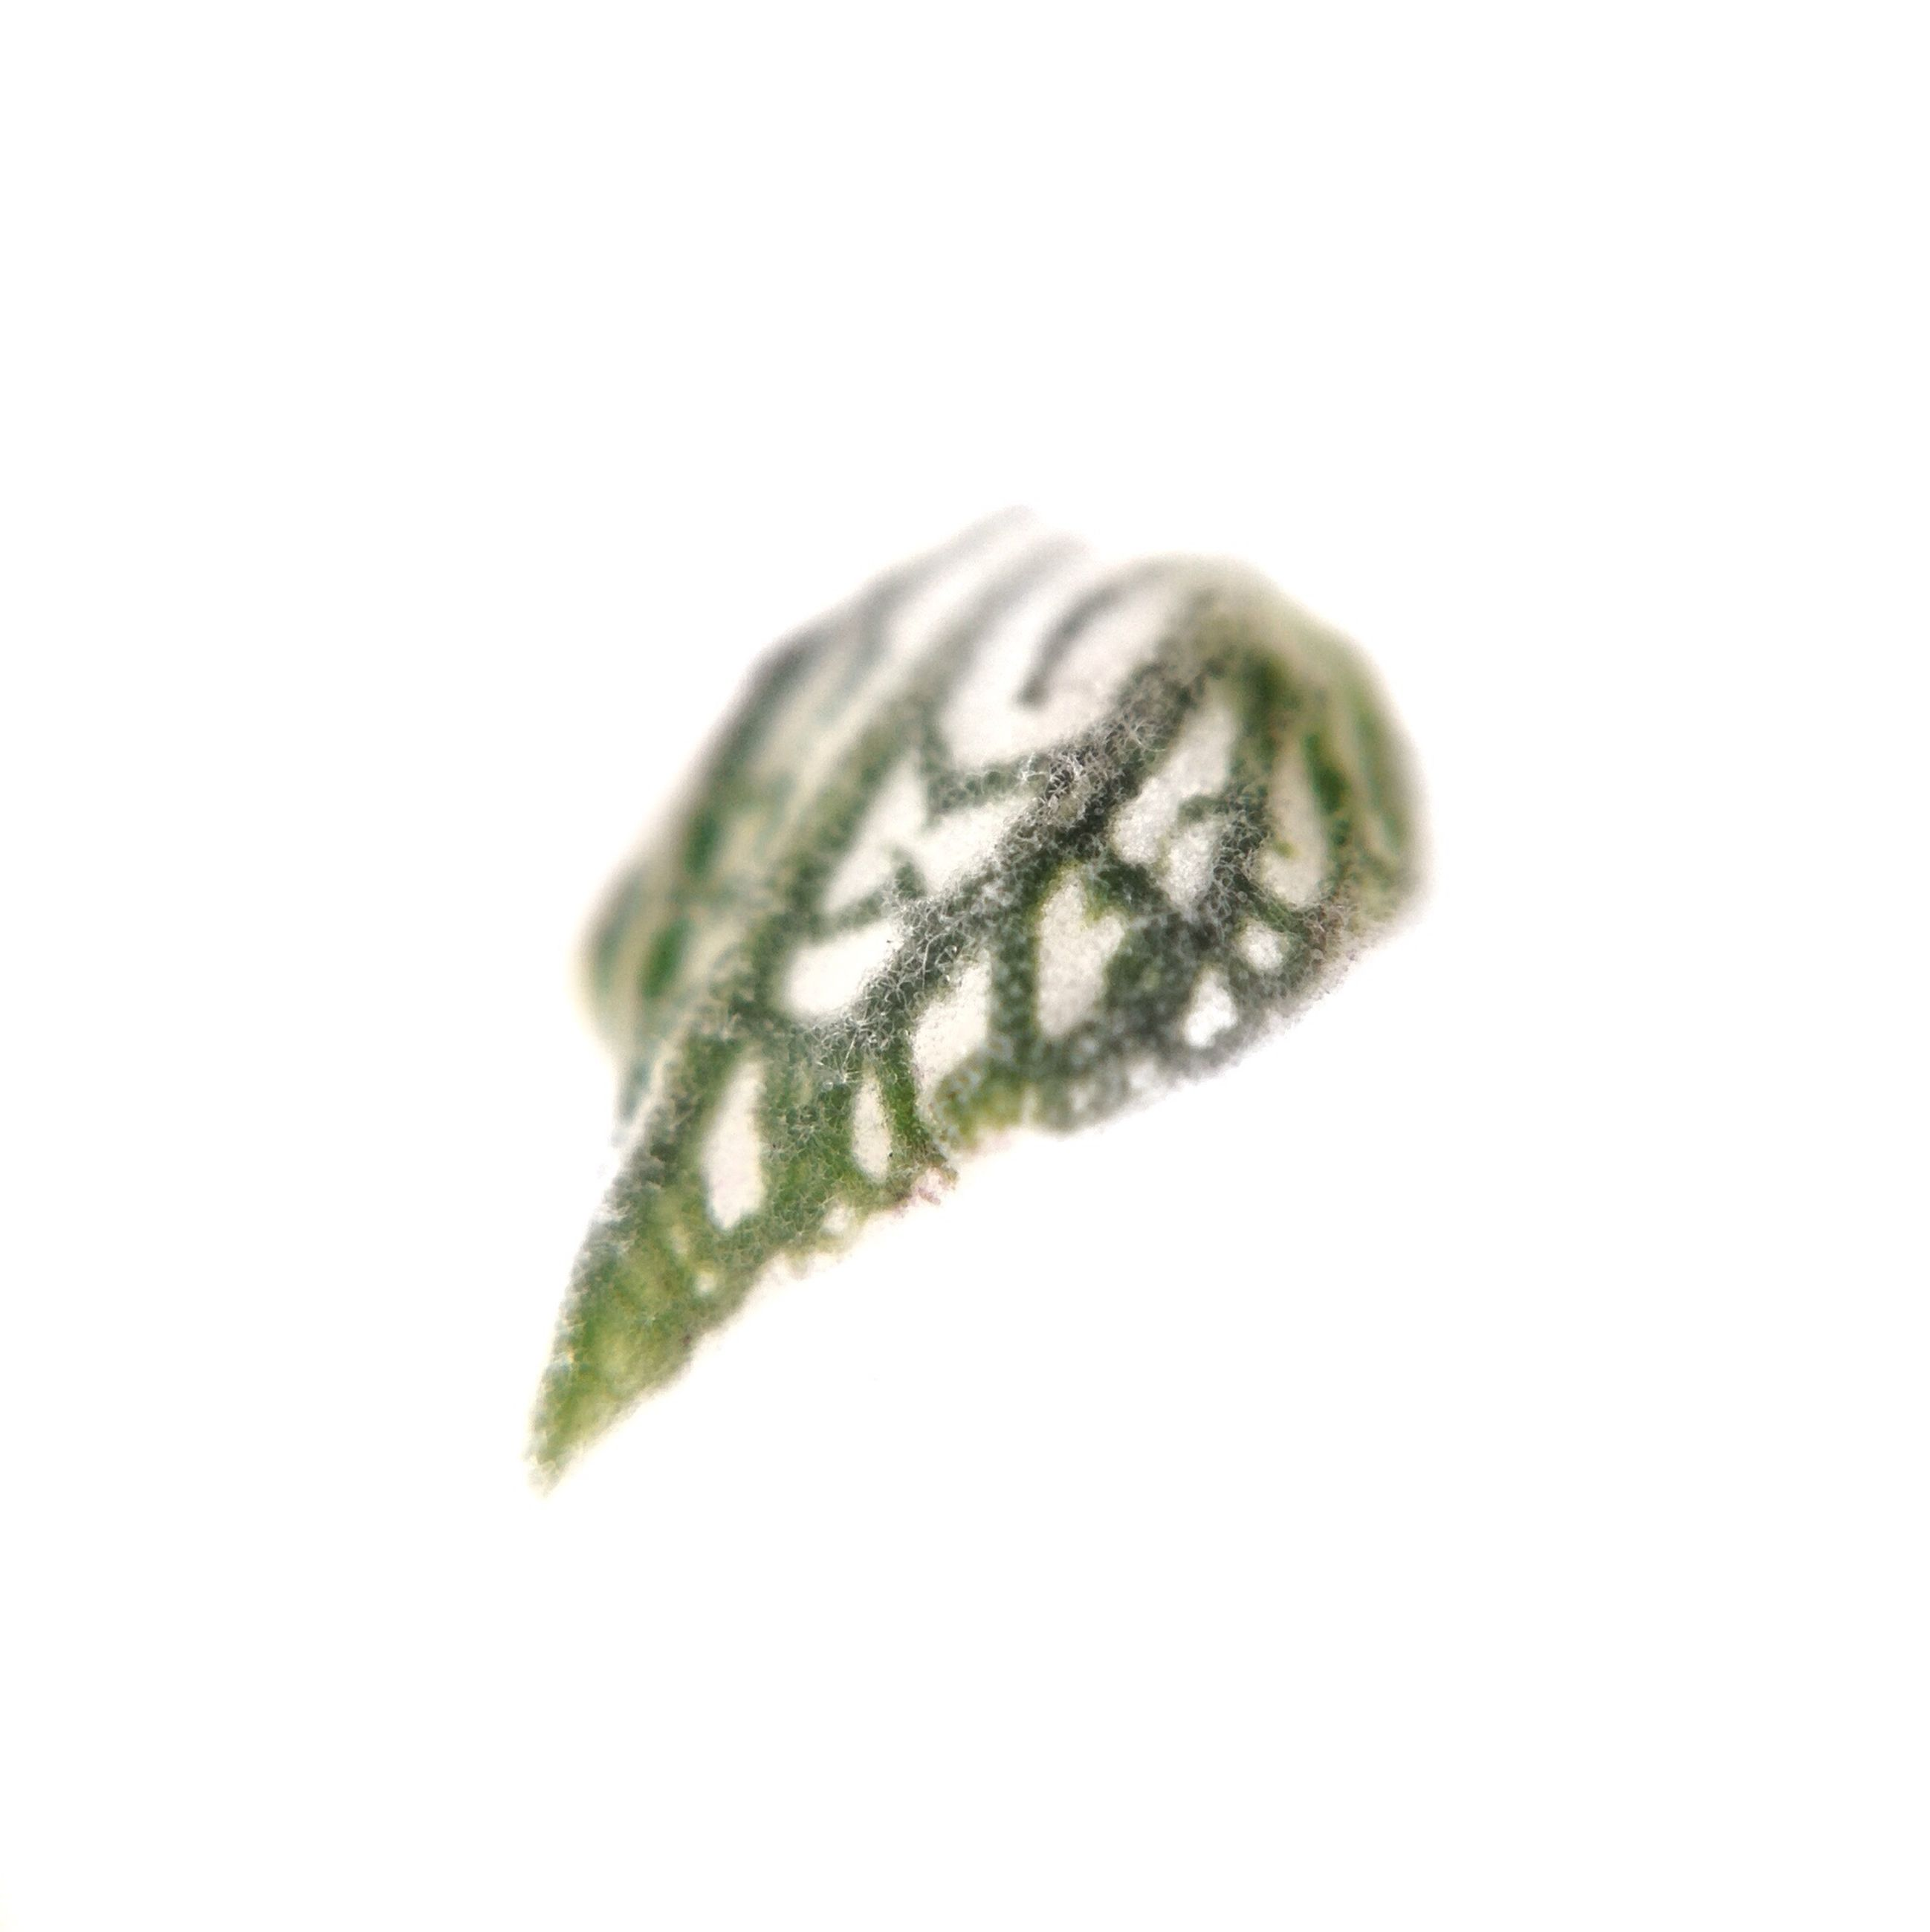 white background, studio shot, close-up, green color, leaf, freshness, copy space, leaf vein, nature, fragility, single object, drop, growth, cut out, still life, green, wet, stem, no people, beauty in nature